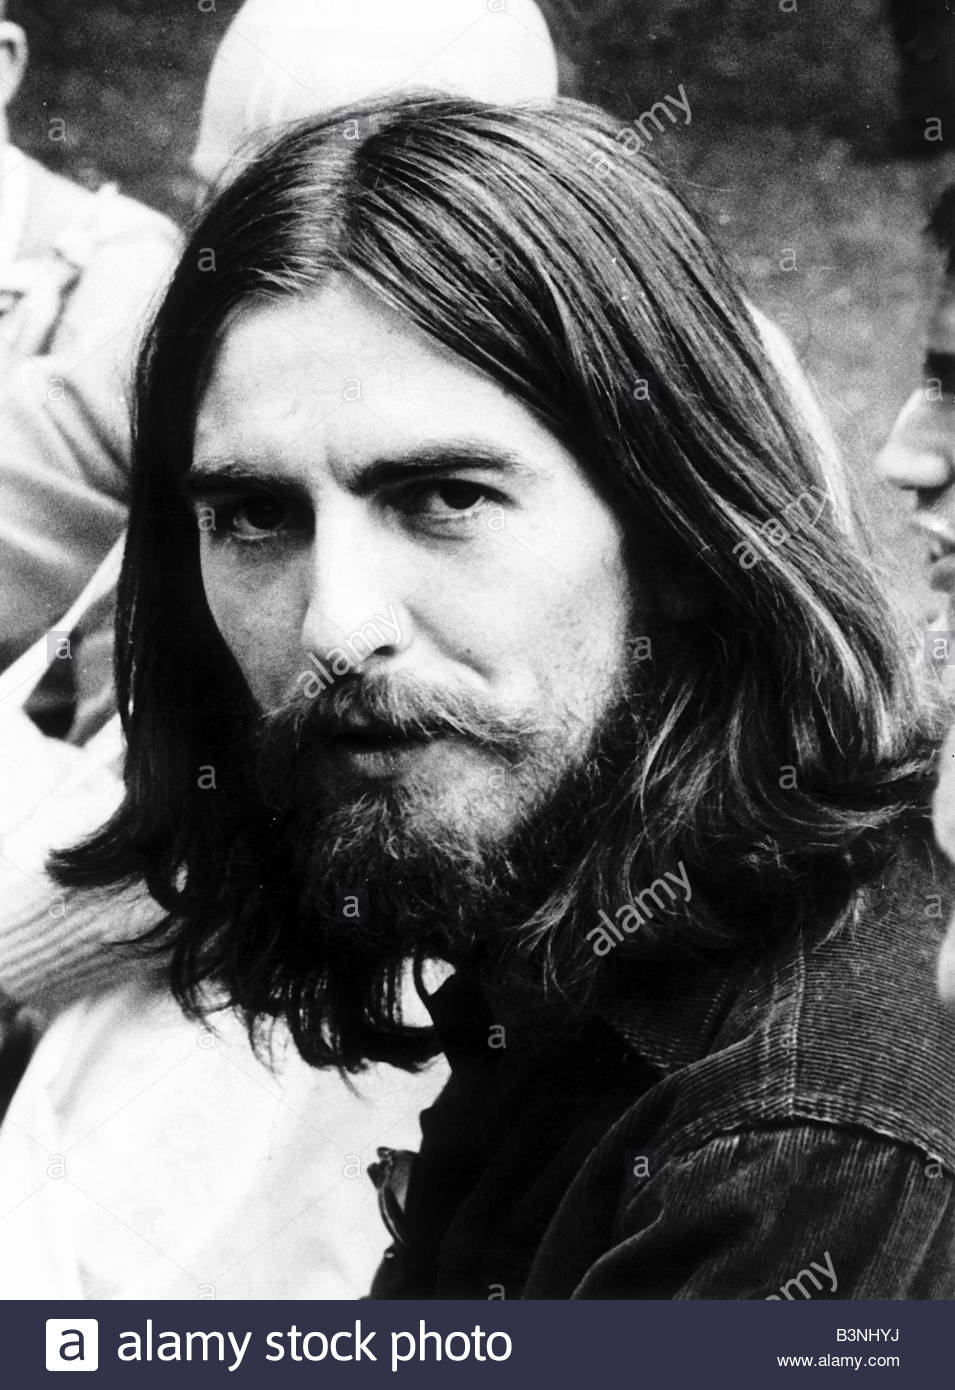 George Harrison singer with the Beatles pop group with long hair and beard Circa 1969 - Stock Image